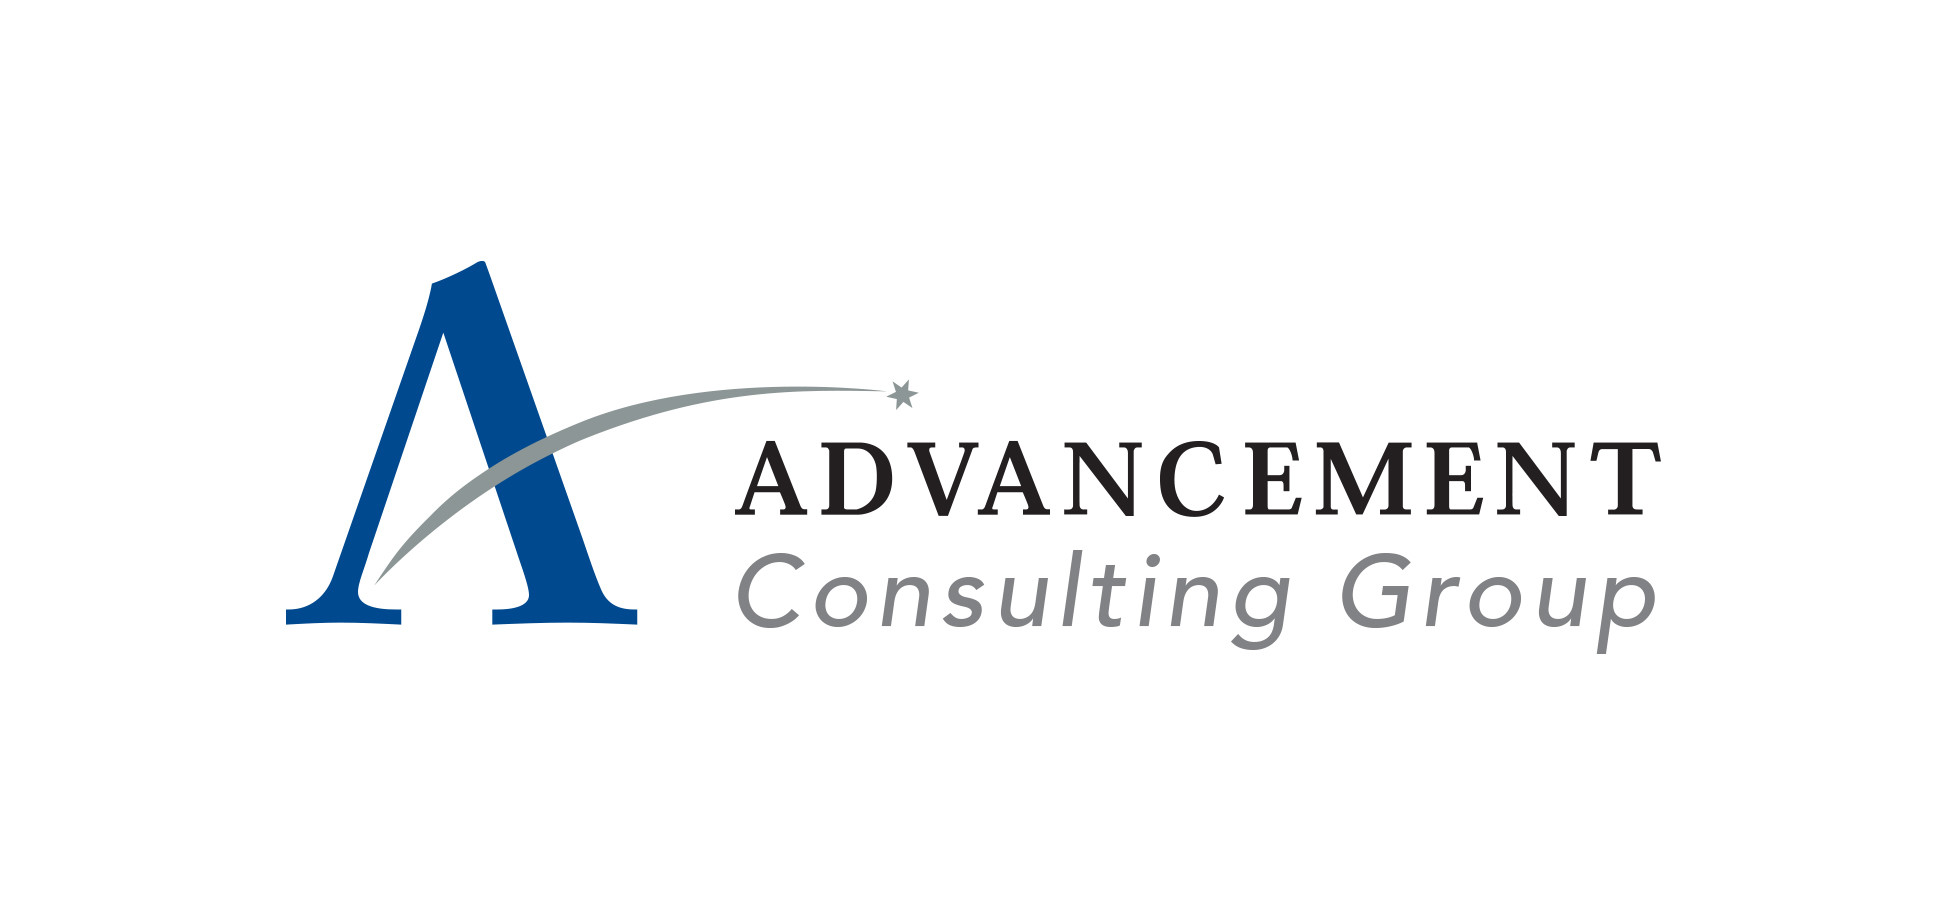 advancementconsulting.com.gt